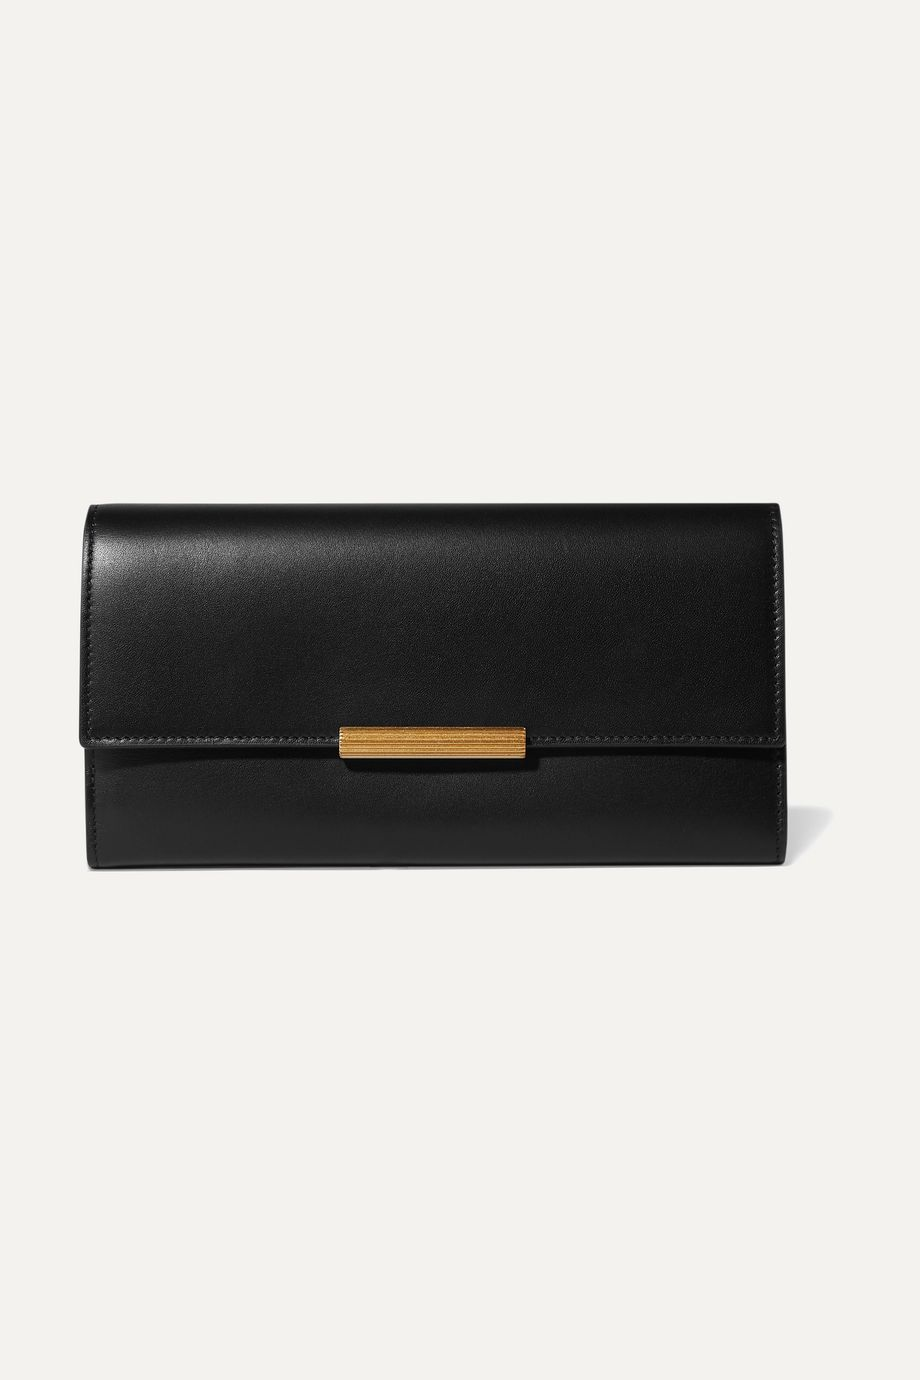 Bottega Veneta Embellished leather continental wallet